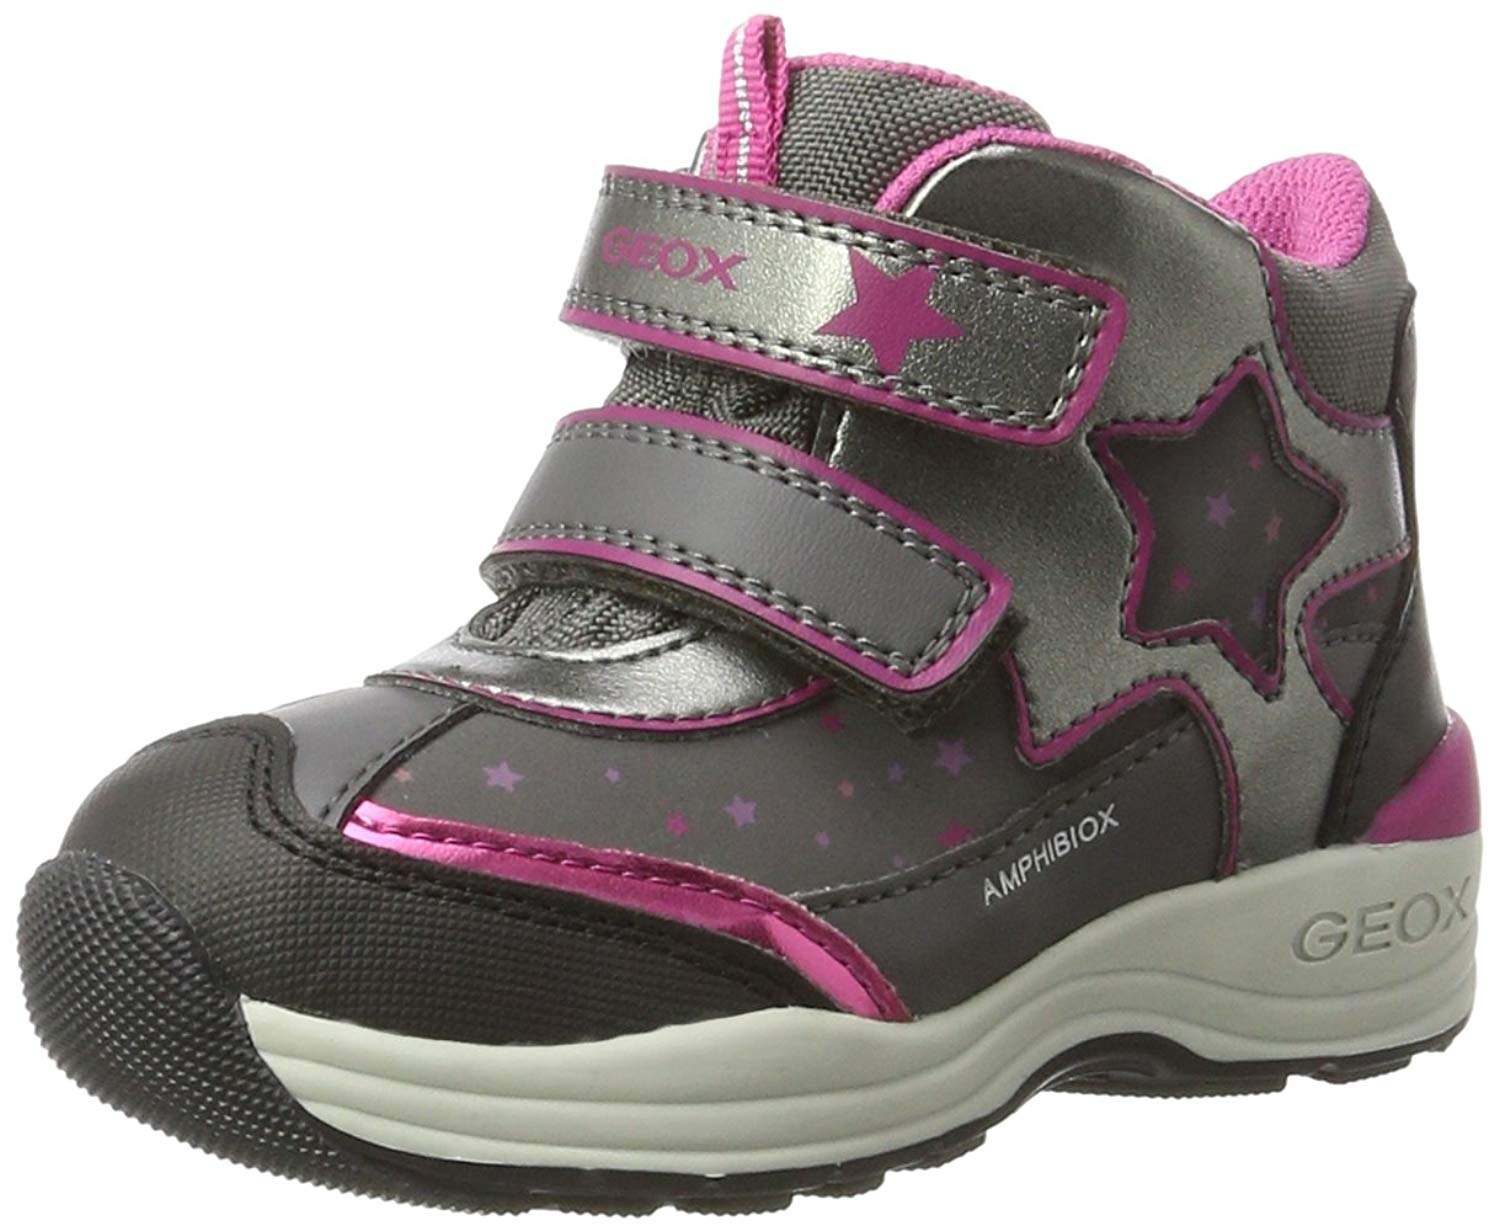 c048d043fab2f Cheap Geox Ankle Boot, find Geox Ankle Boot deals on line at Alibaba.com